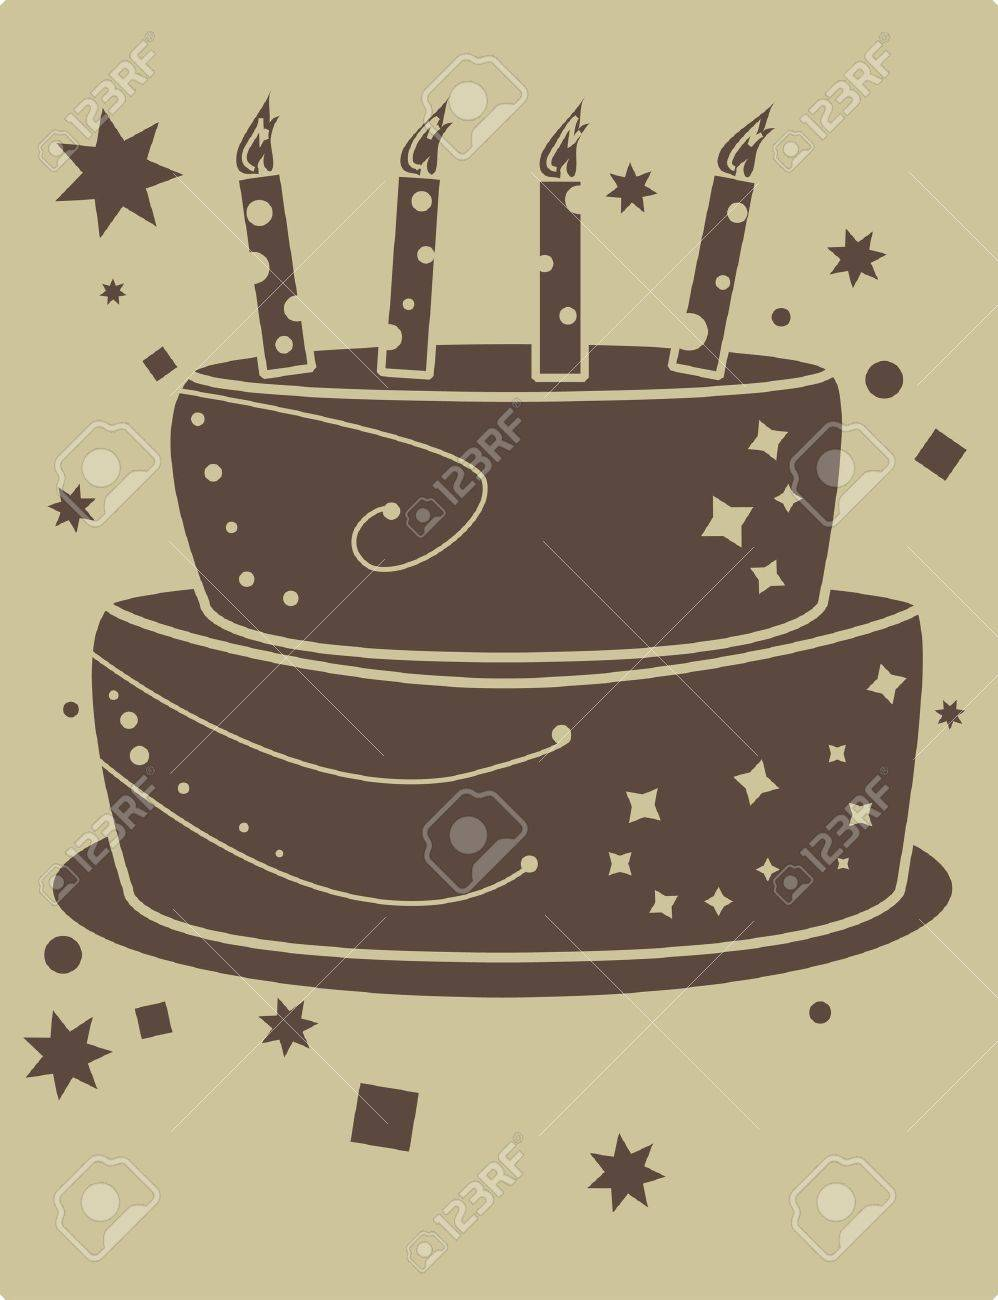 birthday cake graphic in brown and tan - 3475487